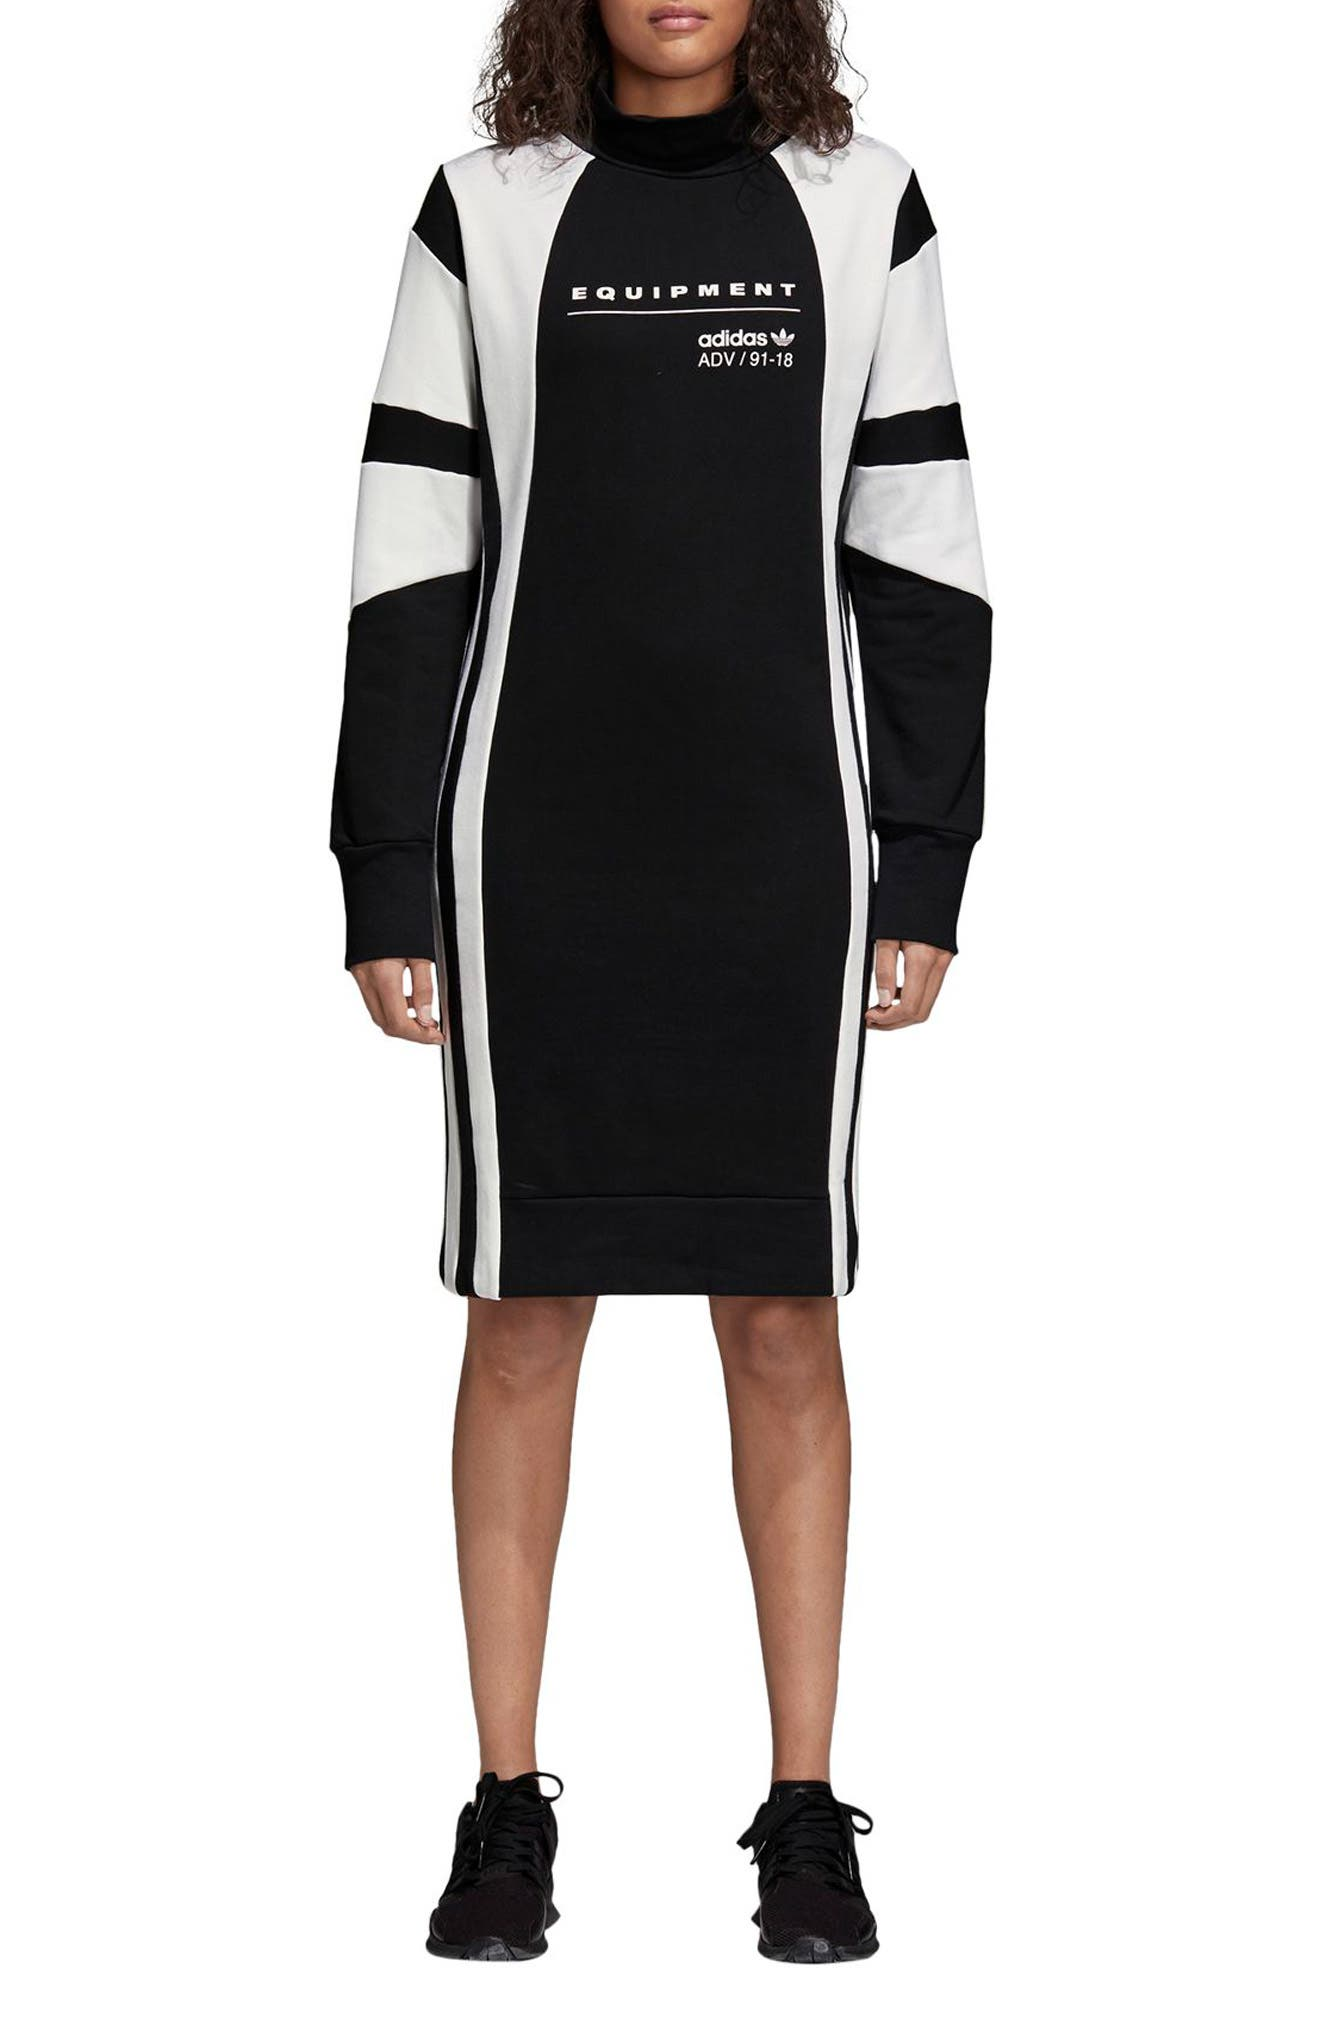 Originals Eqt Dress by Adidas